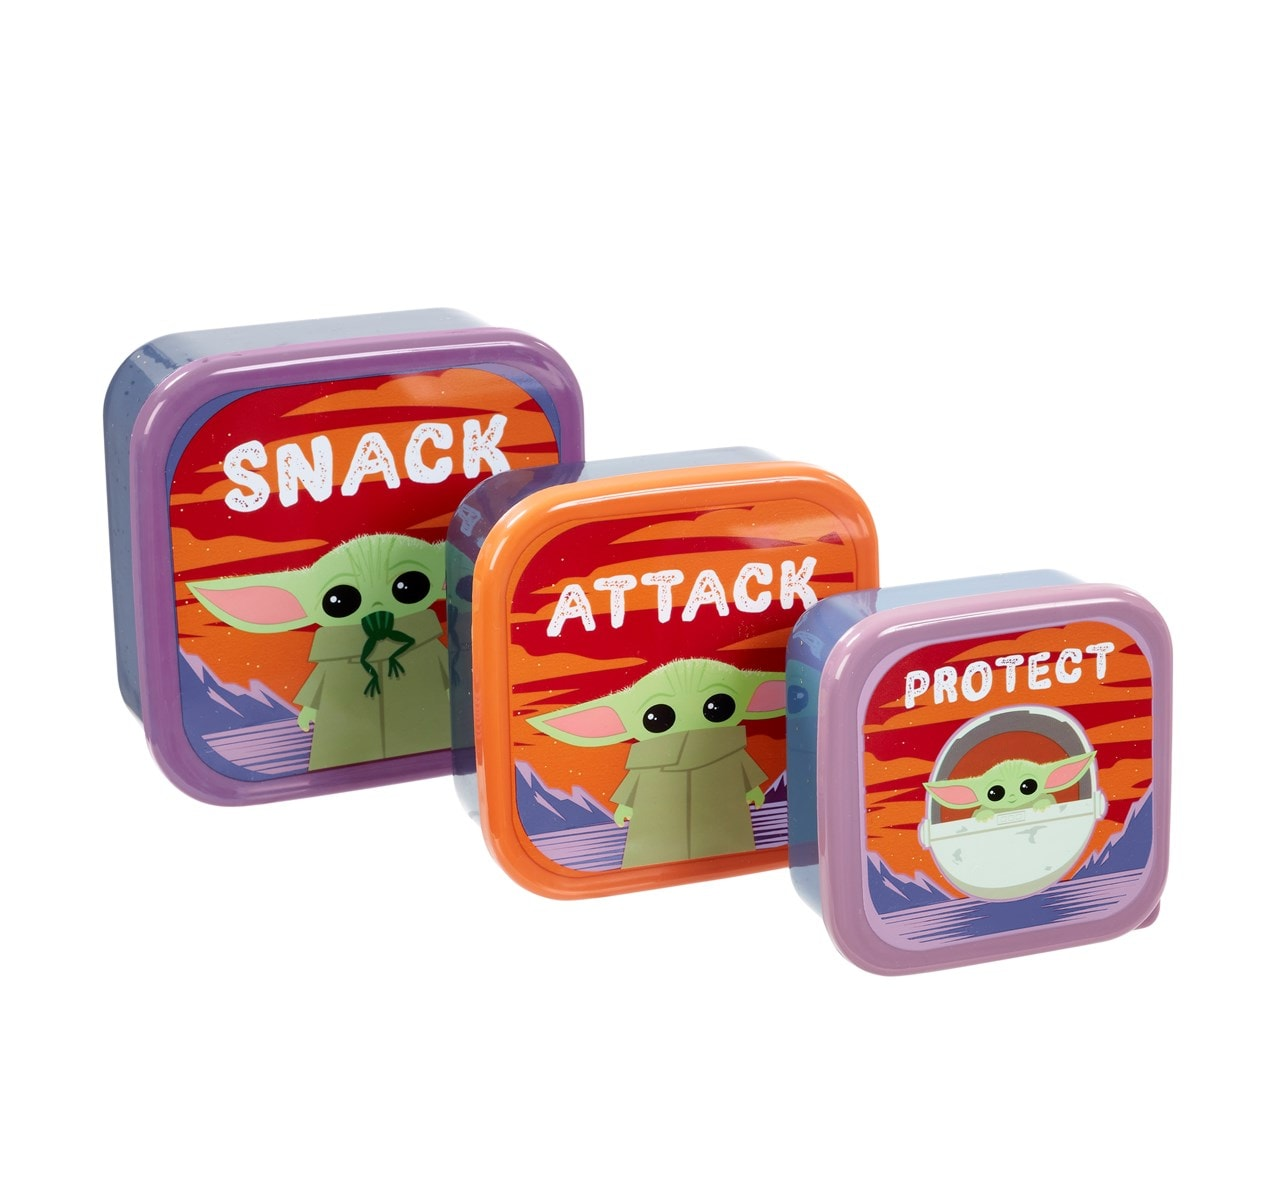 The Child: Snack, Attack, Protect: The Mandalorian Lunch Box Storage Set - 1